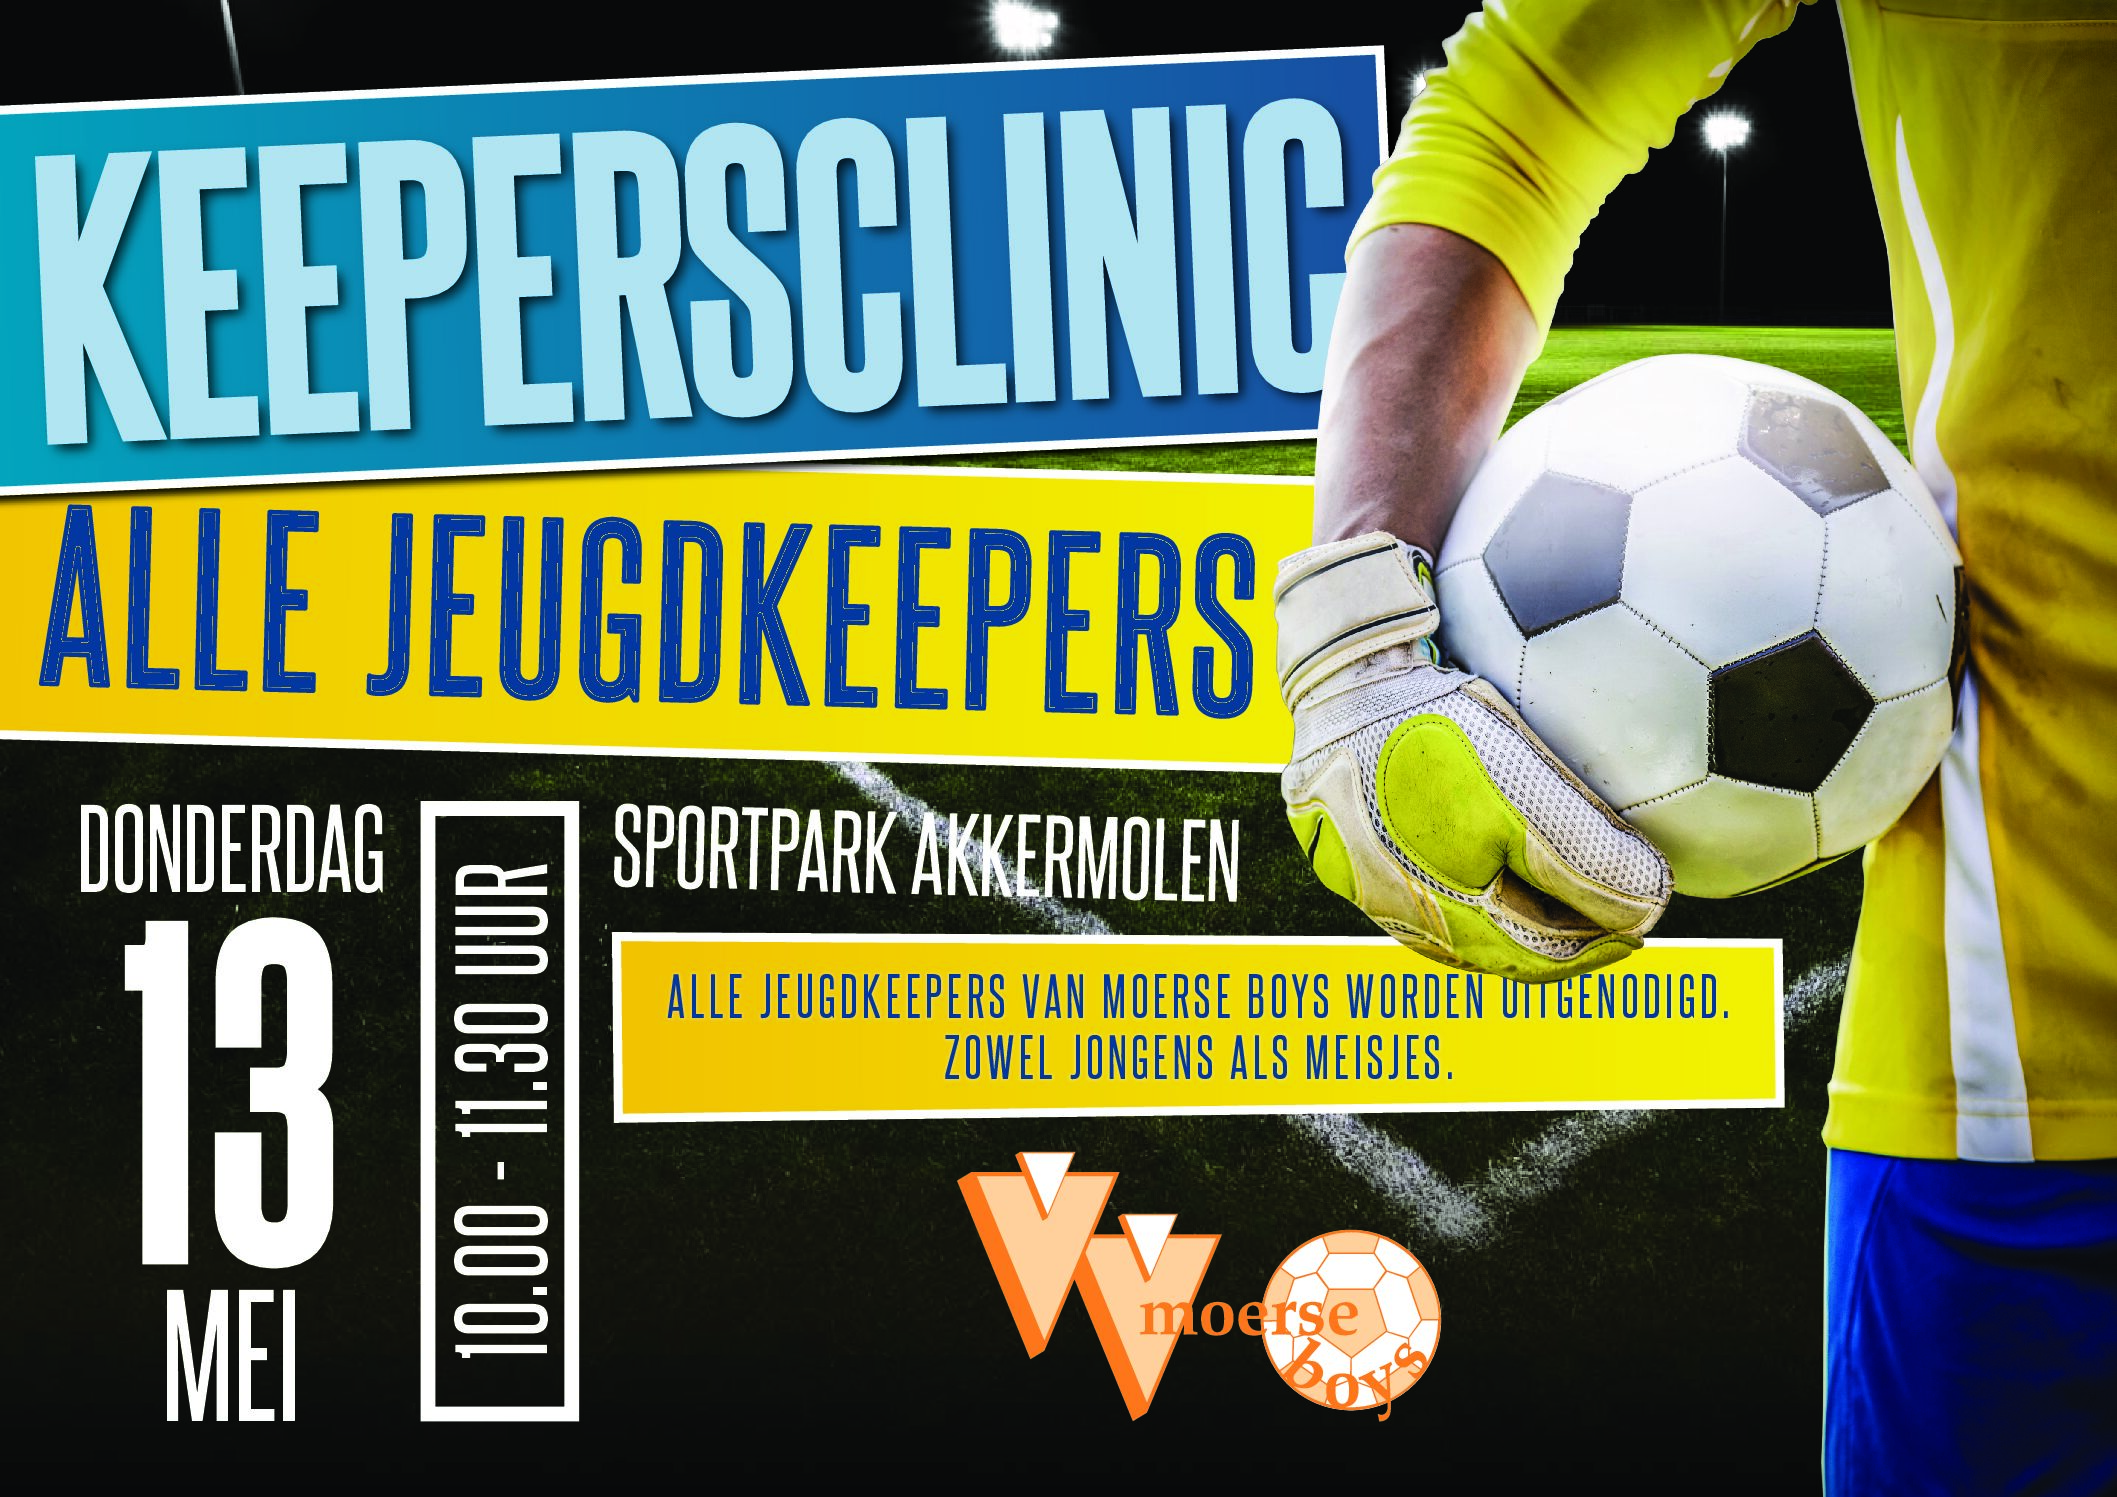 Keepersclinic 2021 Pdf